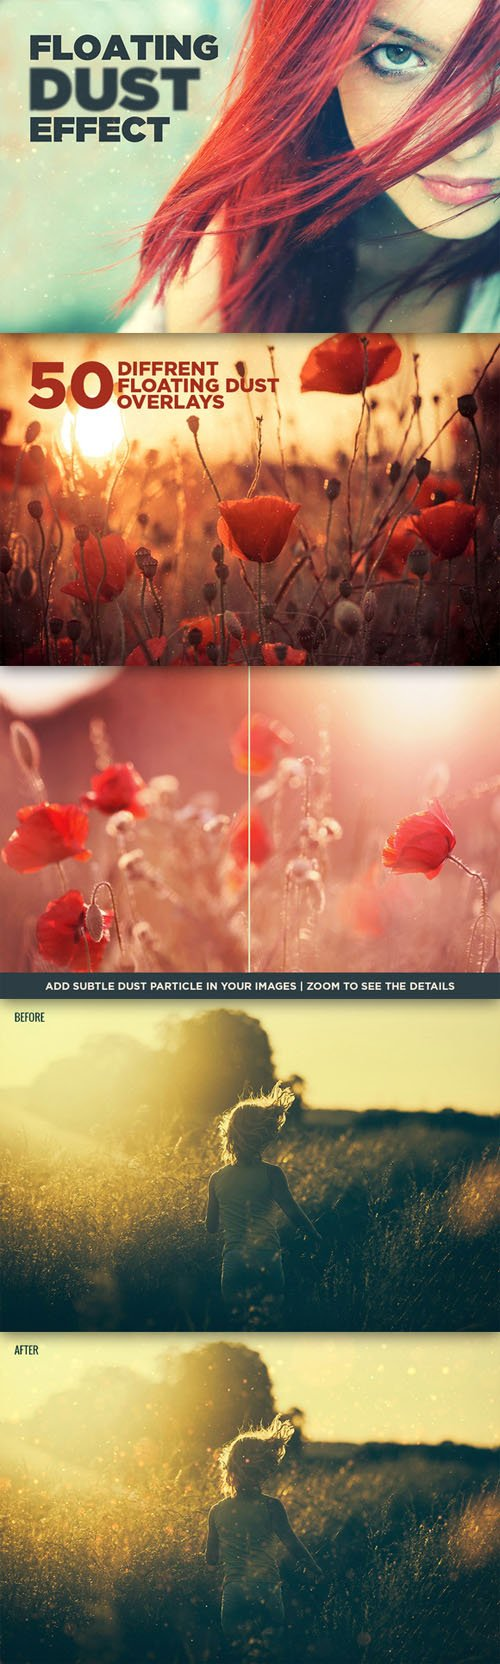 Floating Dust Overlay Subtle Effect - Creativemarket 139933